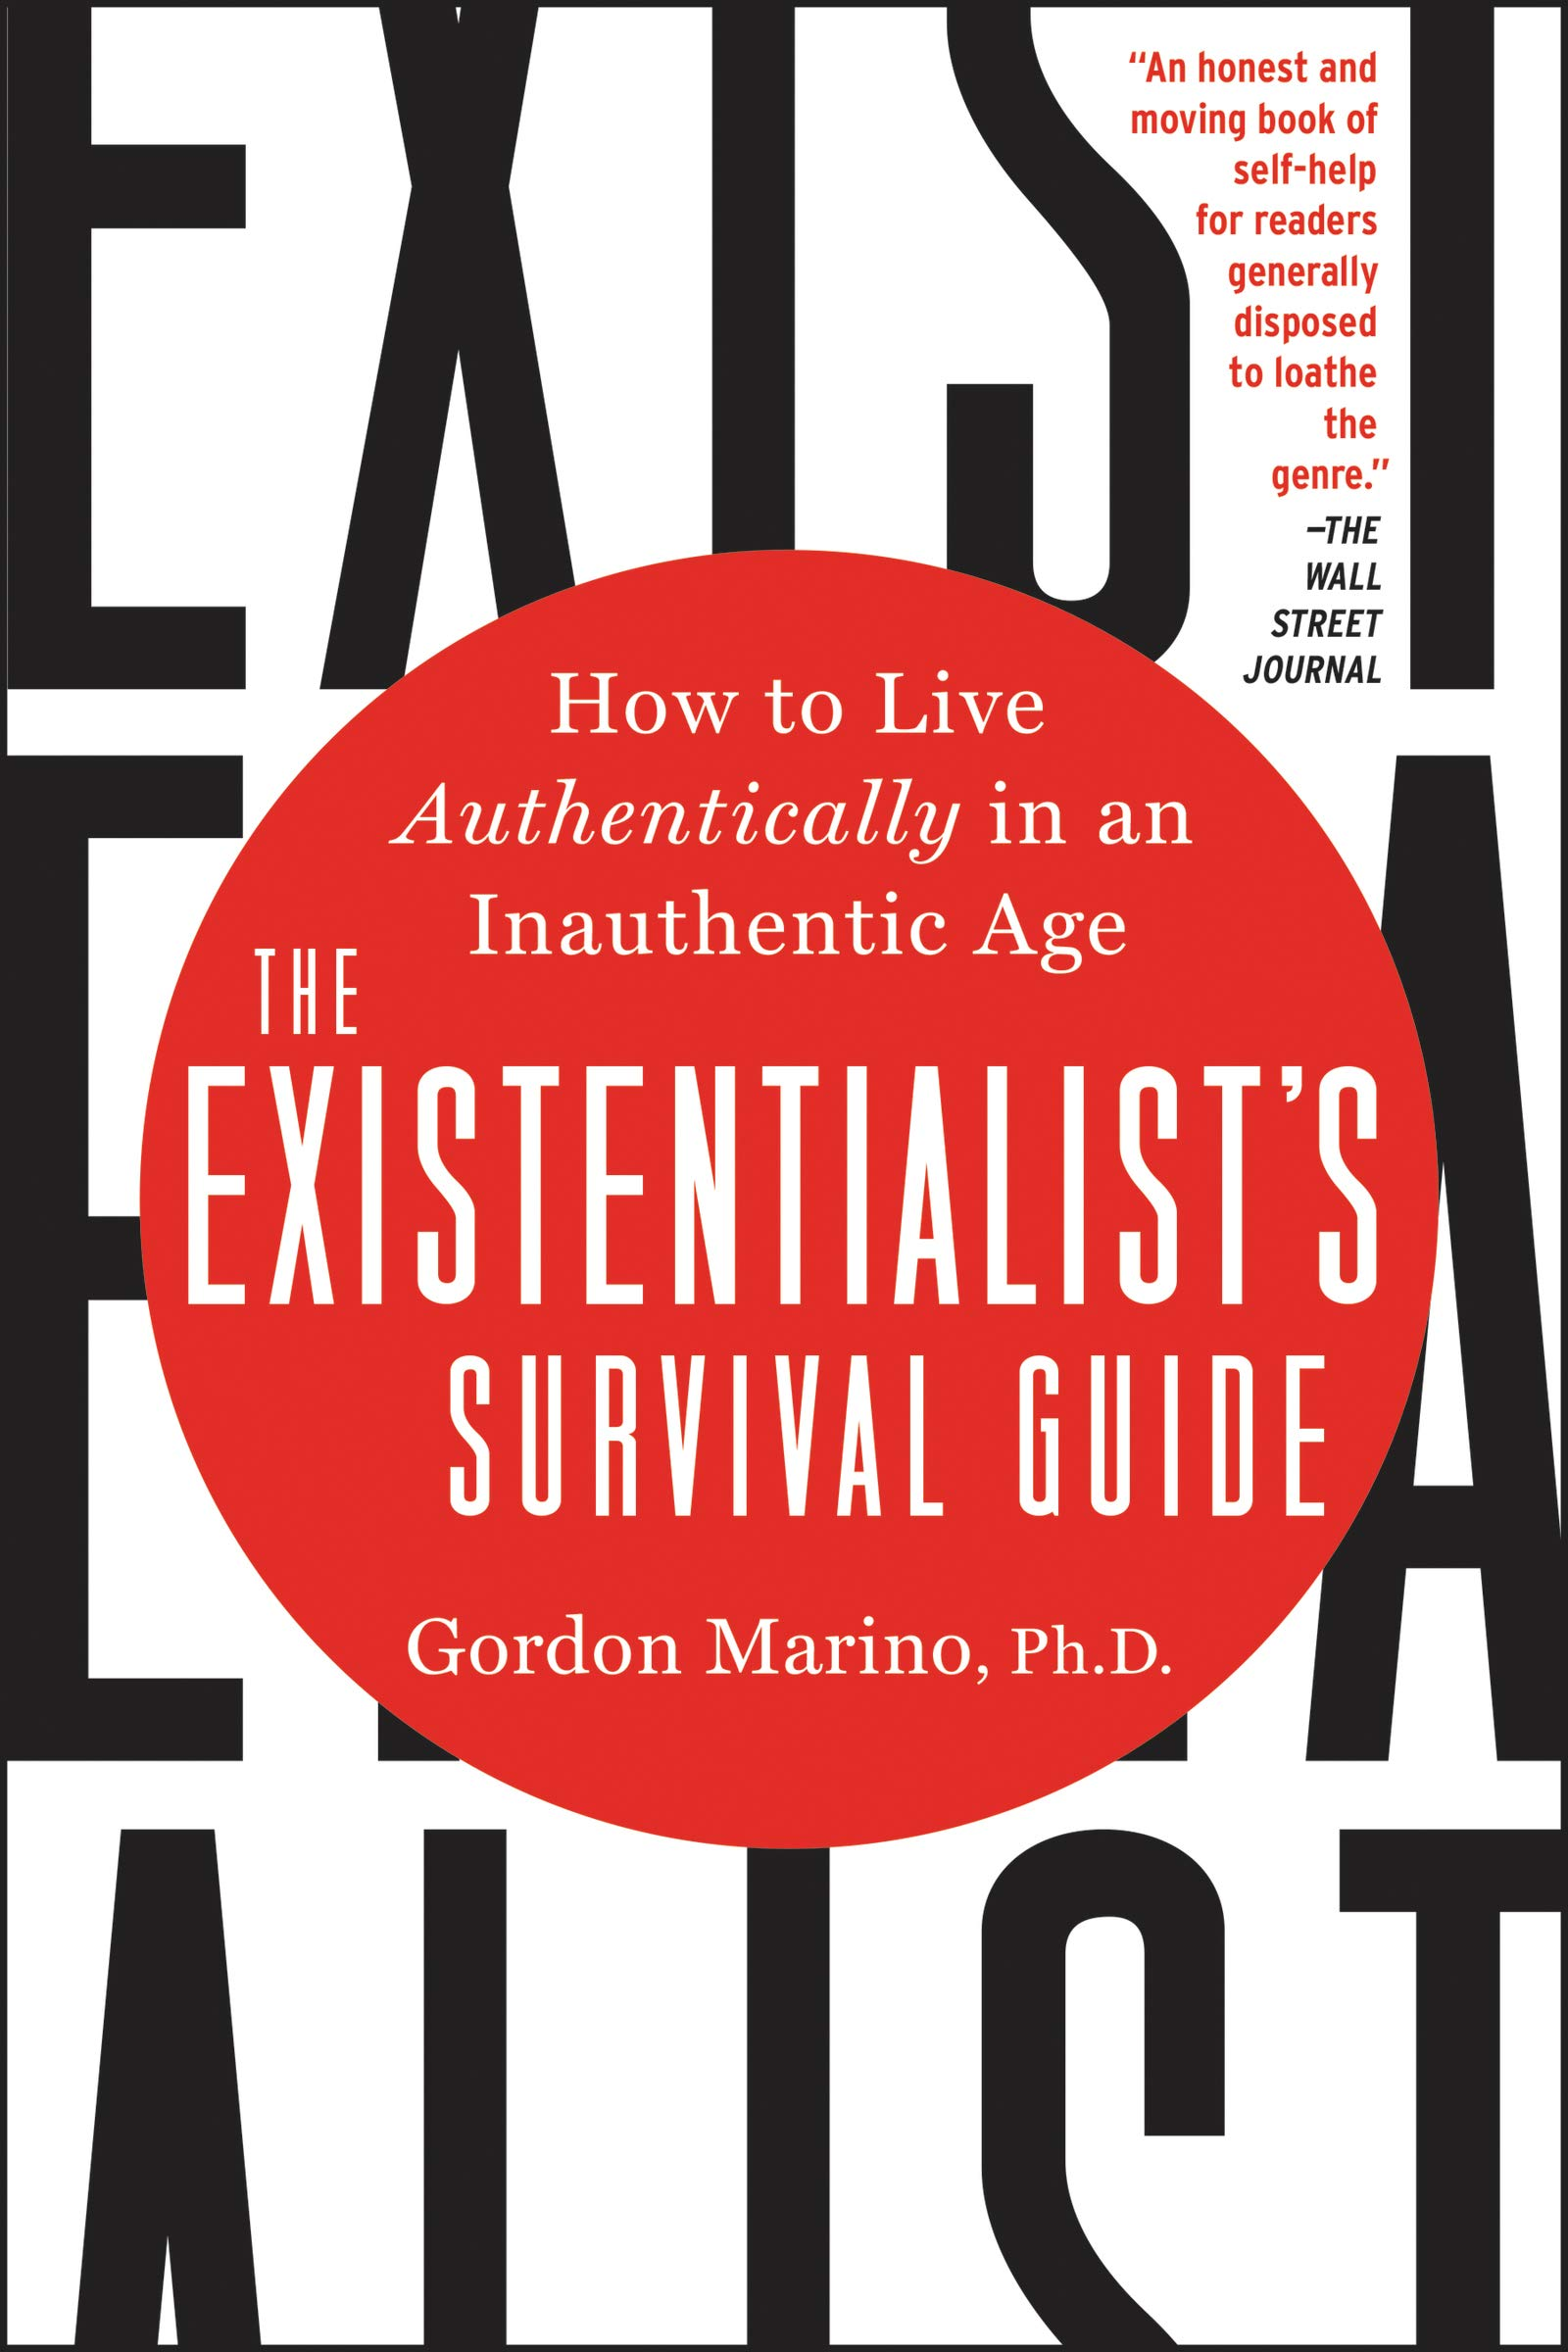 The Existentialist's Survival Guide cover.